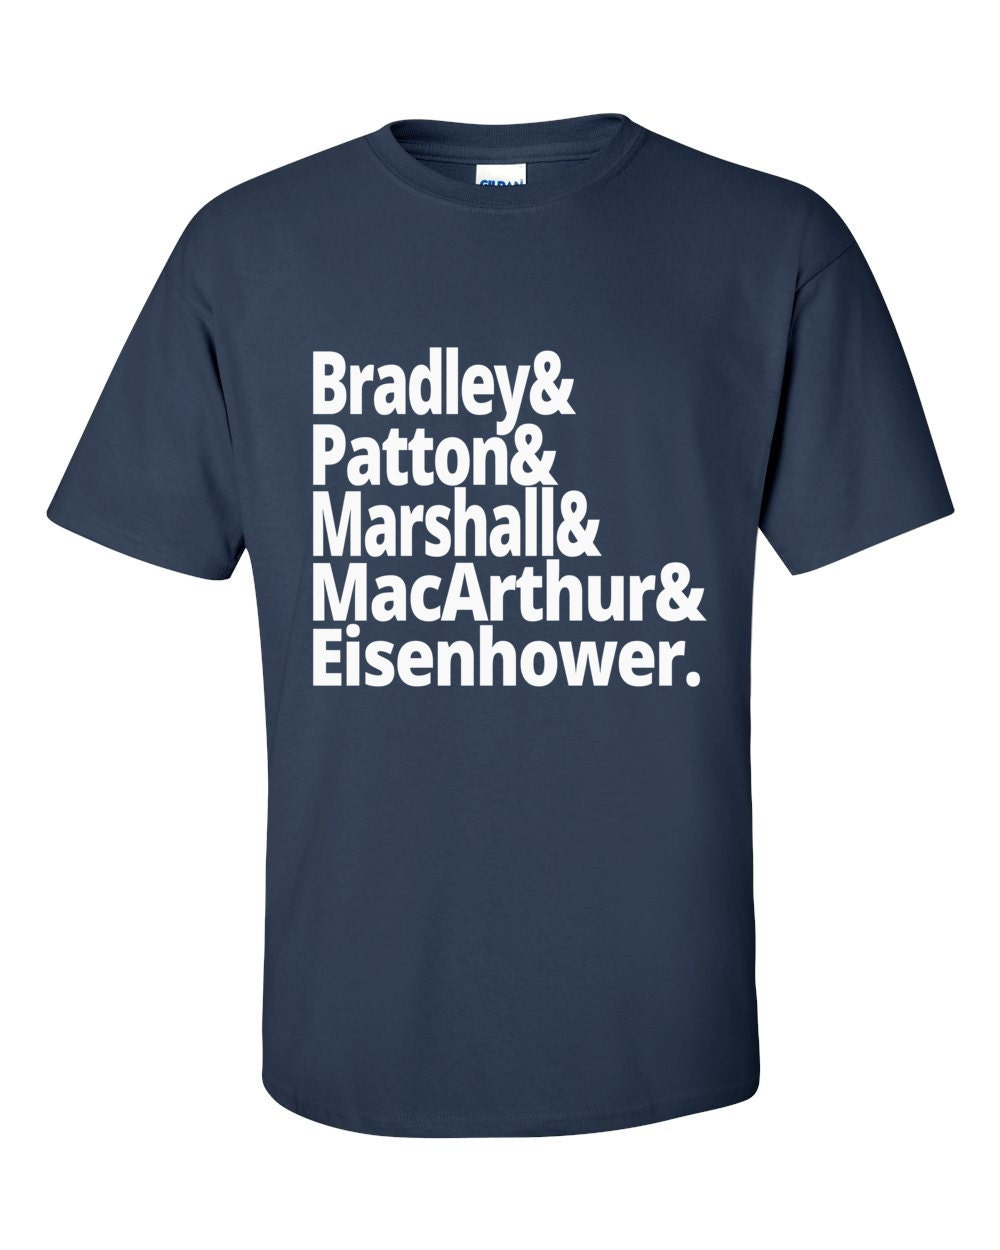 US History - World War II Generals - Bradley, Patton, Marshall, MacArthur and Eisenhower - US History T-shirt